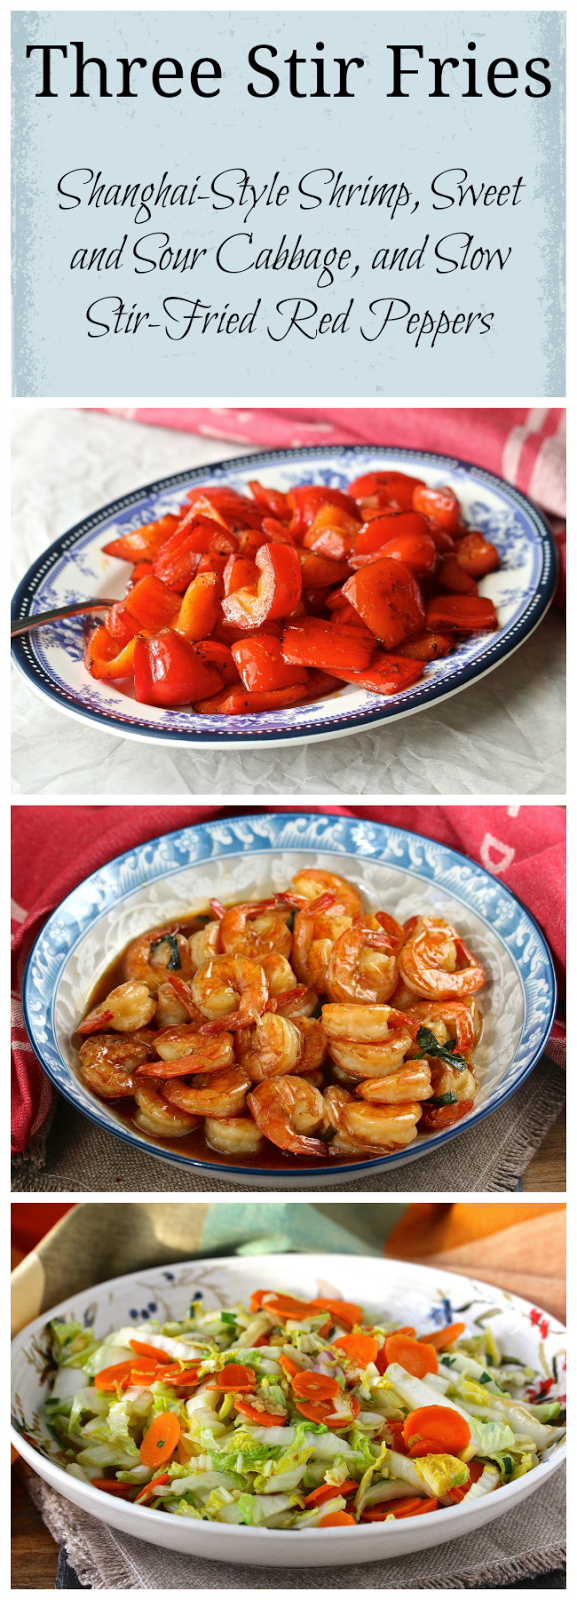 Three Stir Fries: Shanghai-Style Shrimp, Sweet and Sour Cabbage, and Slow Stir-Fried Red Peppers